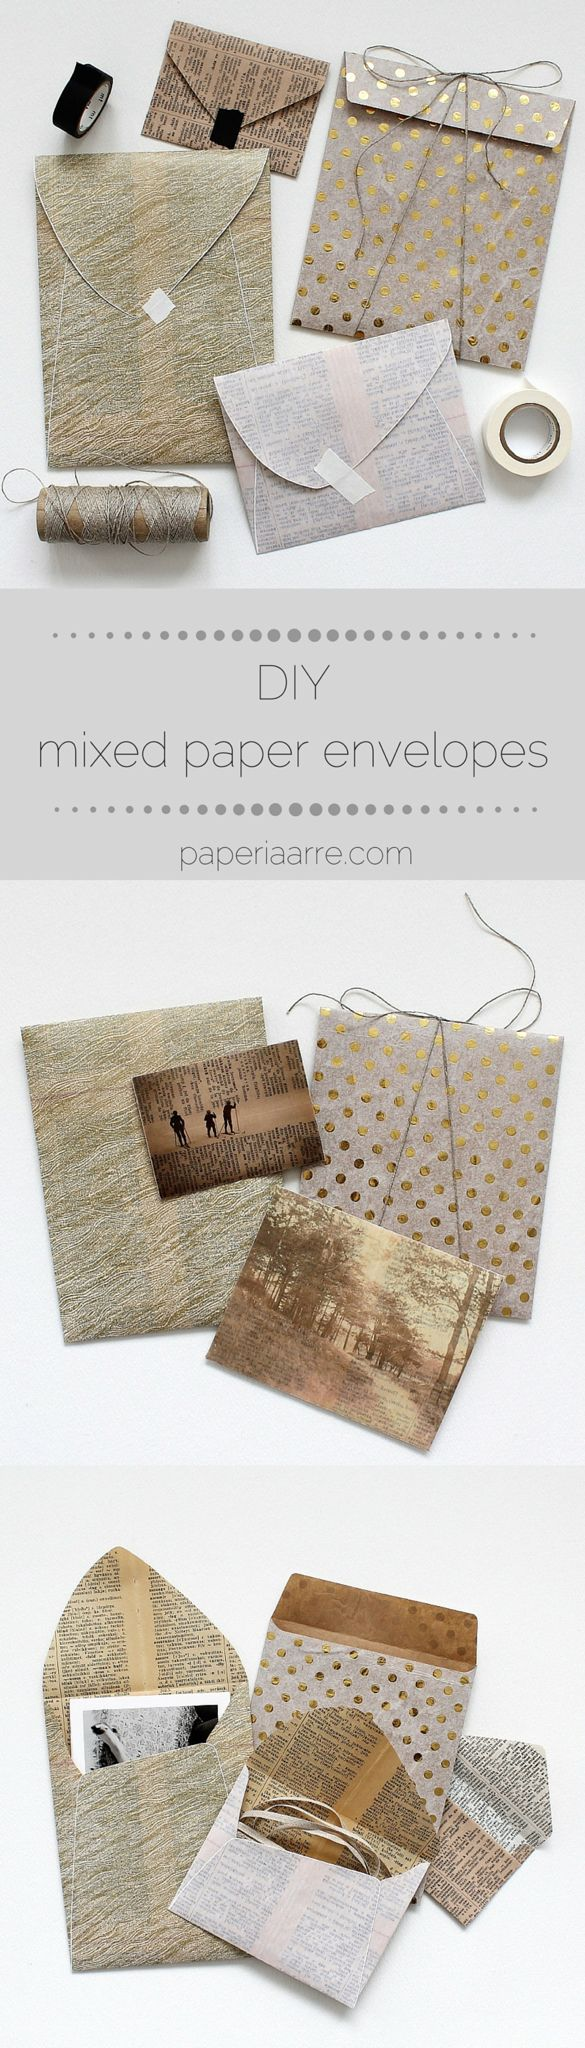 ideas about Diy Envelope Envelopes, Envelope